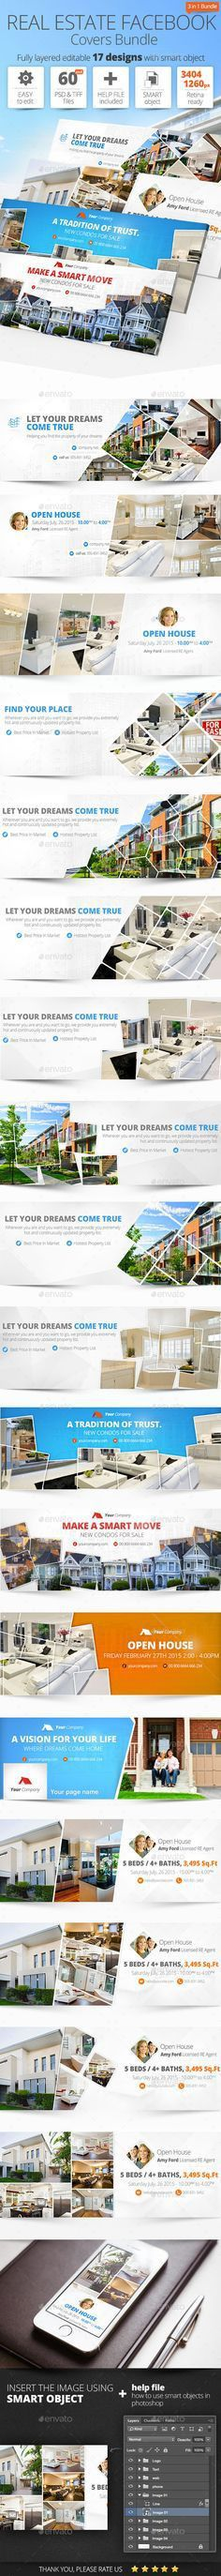 Real Estate Facebook Covers | Real estate, Facebook cover template ...